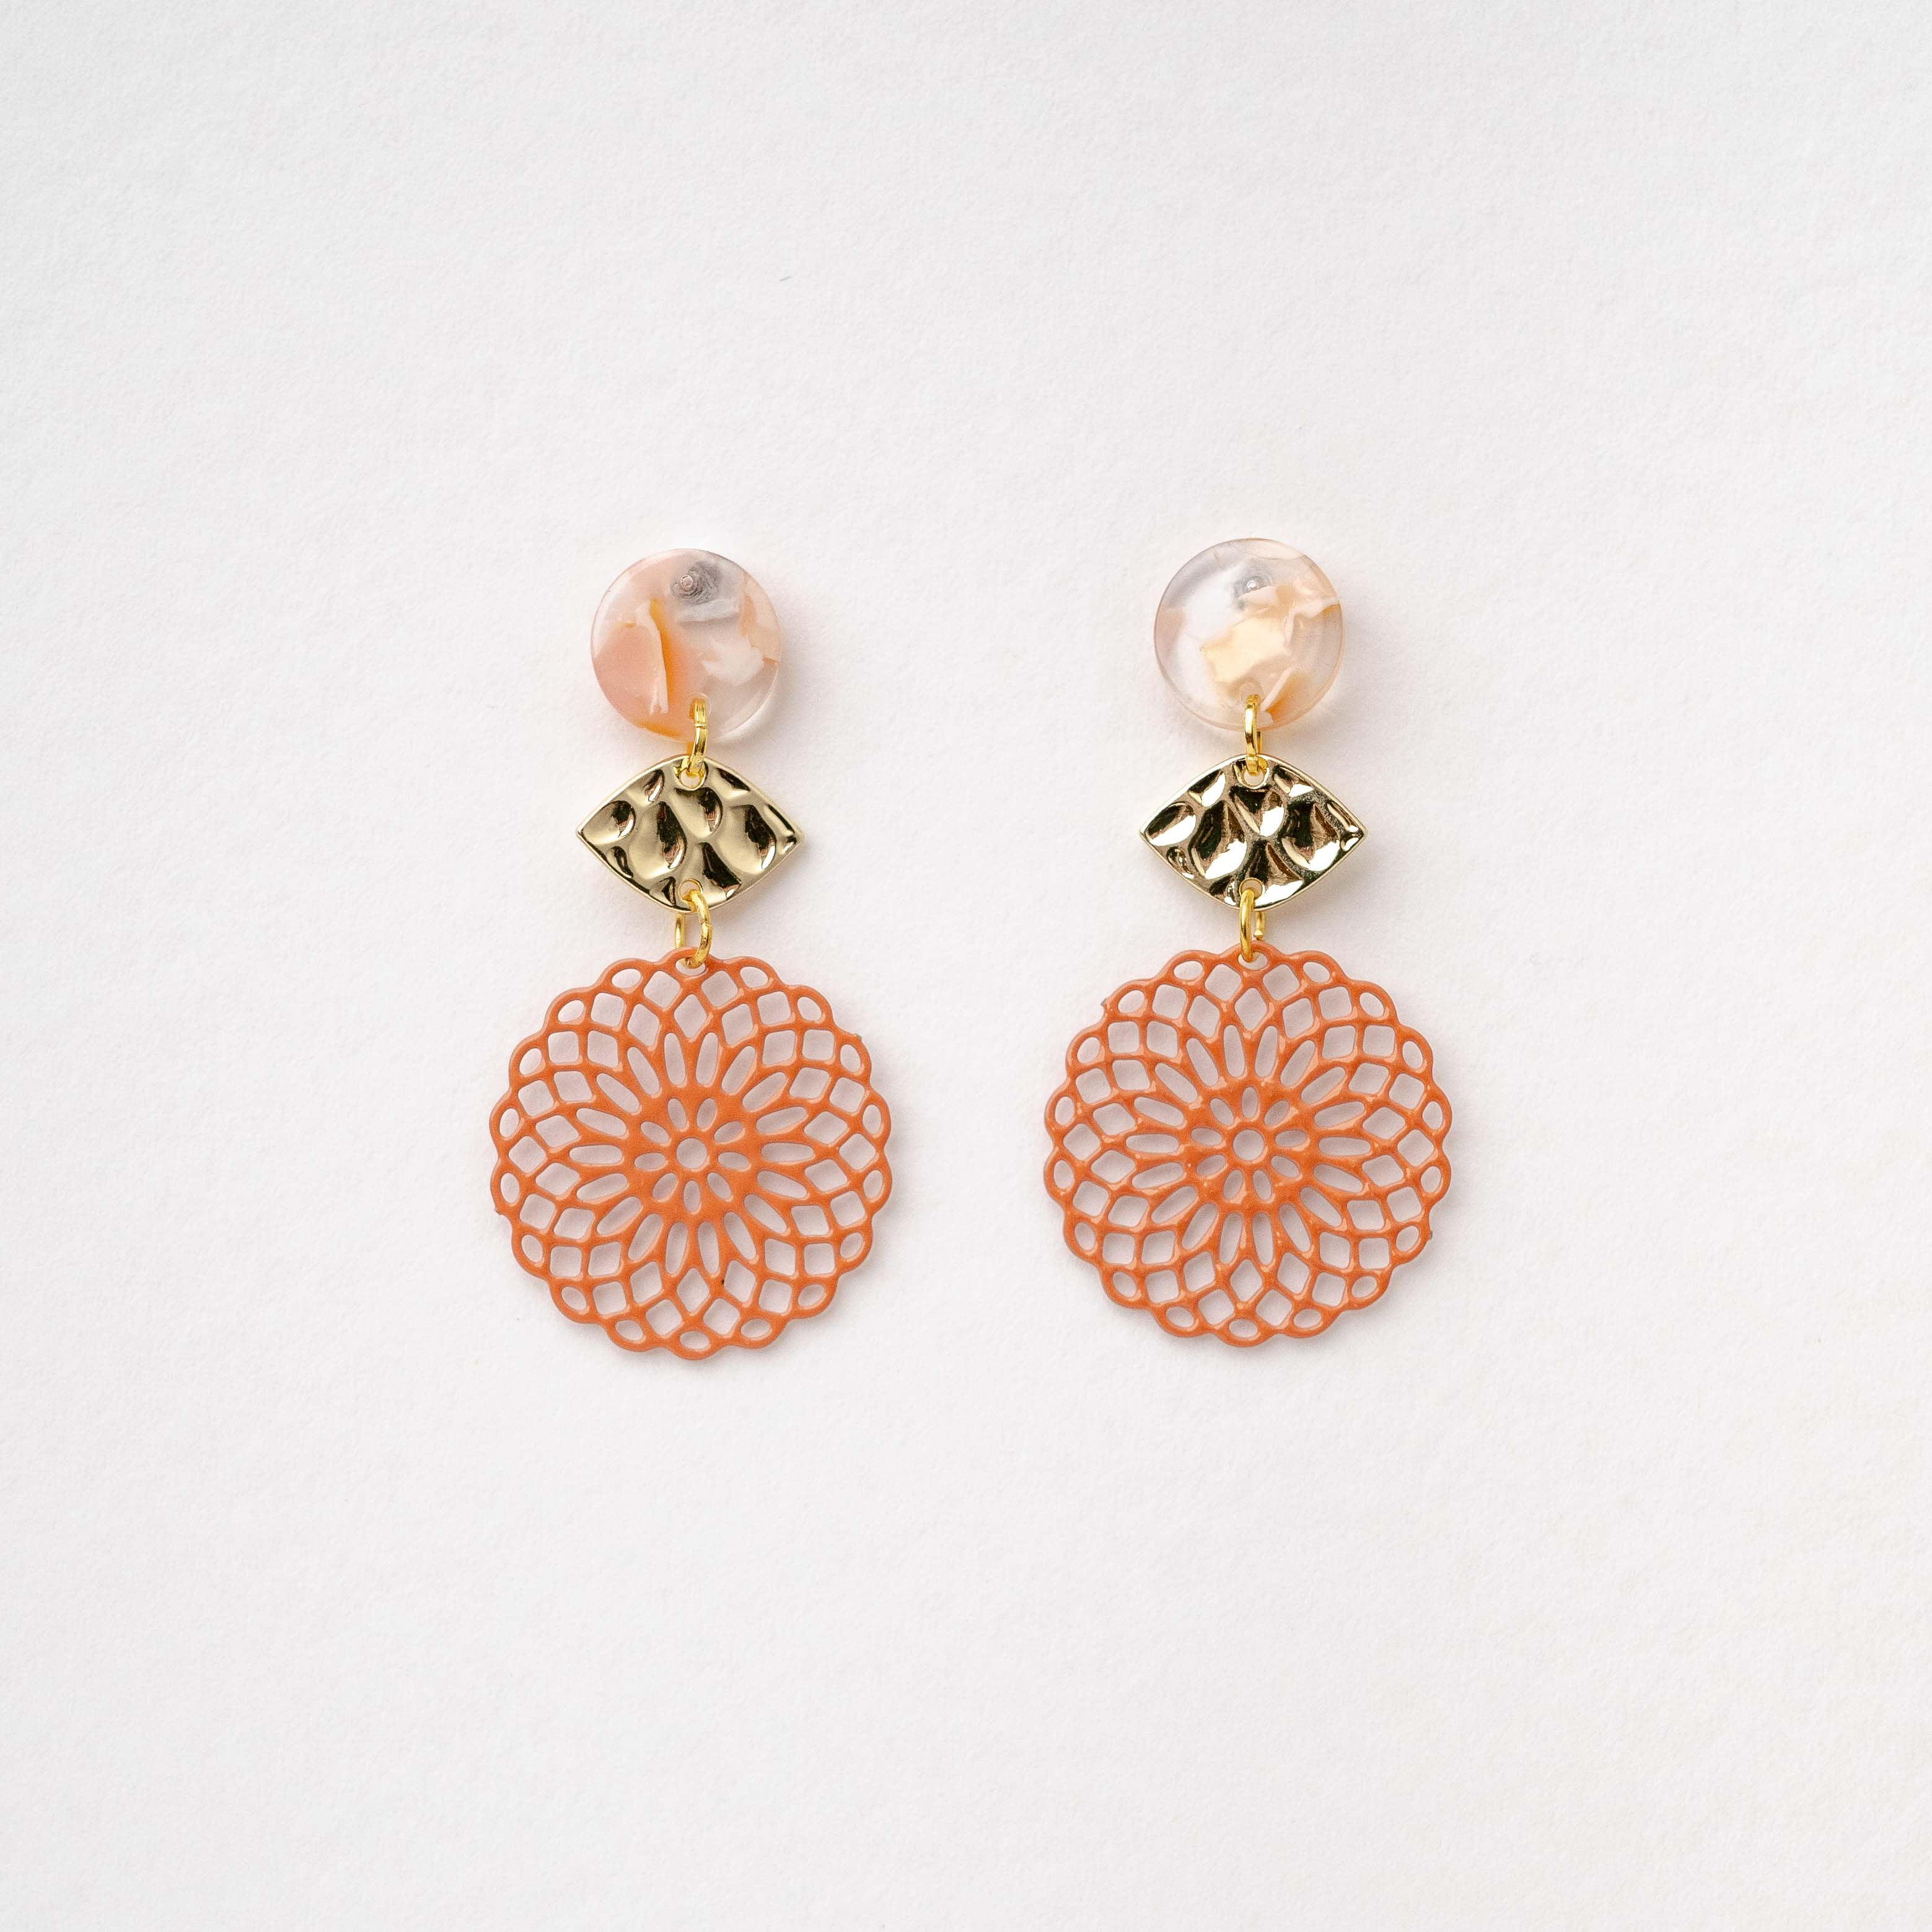 Isabella - Round Earring